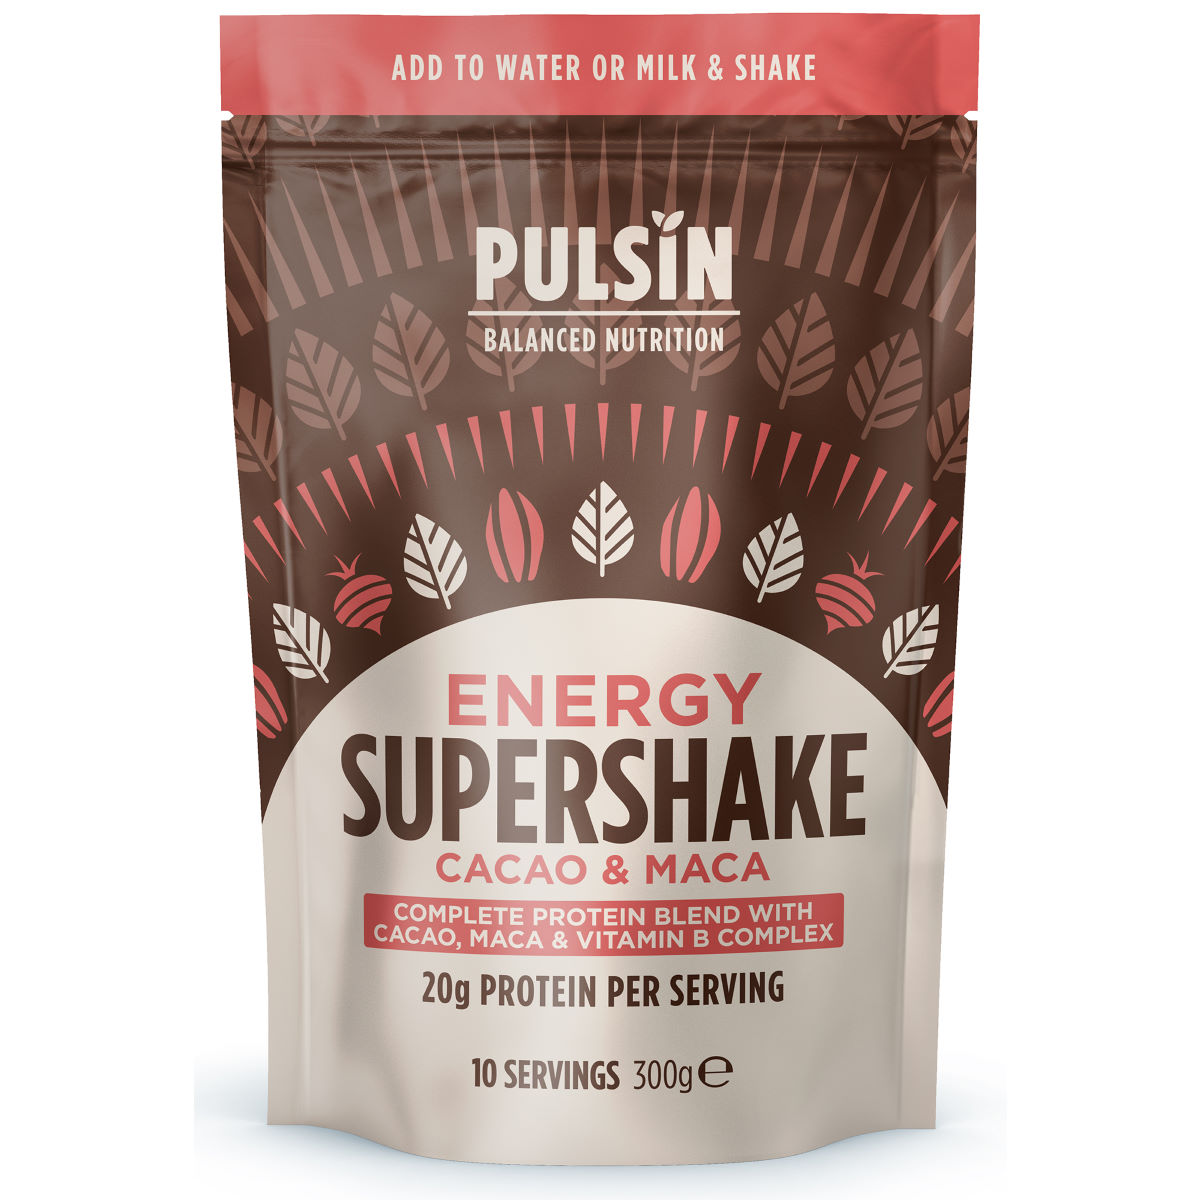 Pulsin Supershake Protein Powder (300g) - 300g Energy CacaoandMaca